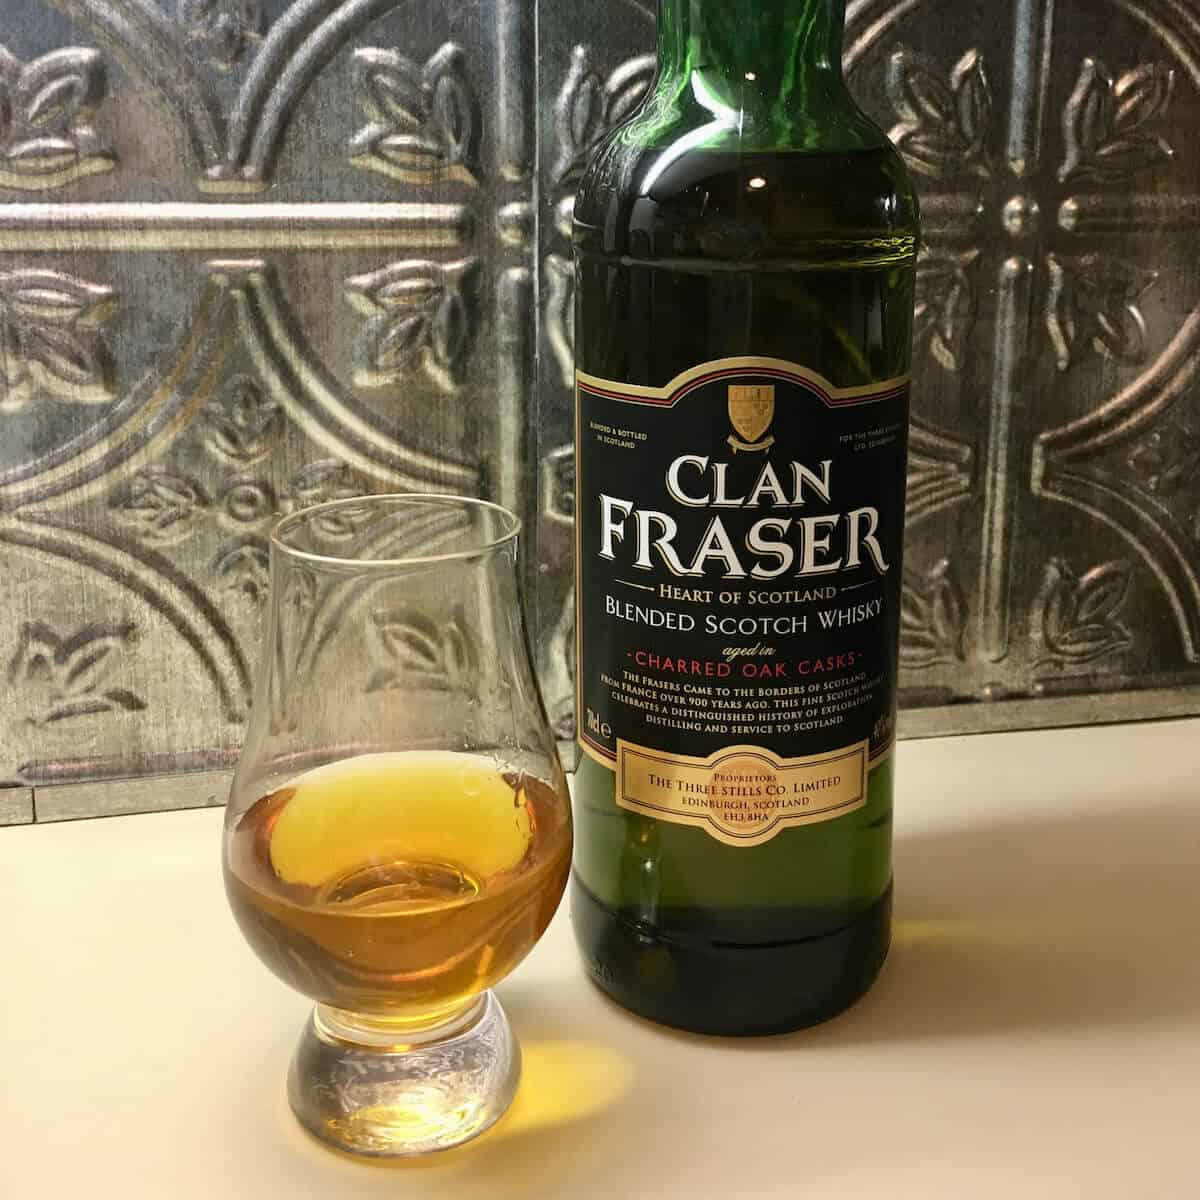 Clan Fraser blended scotch whisky bottle with poured glass.